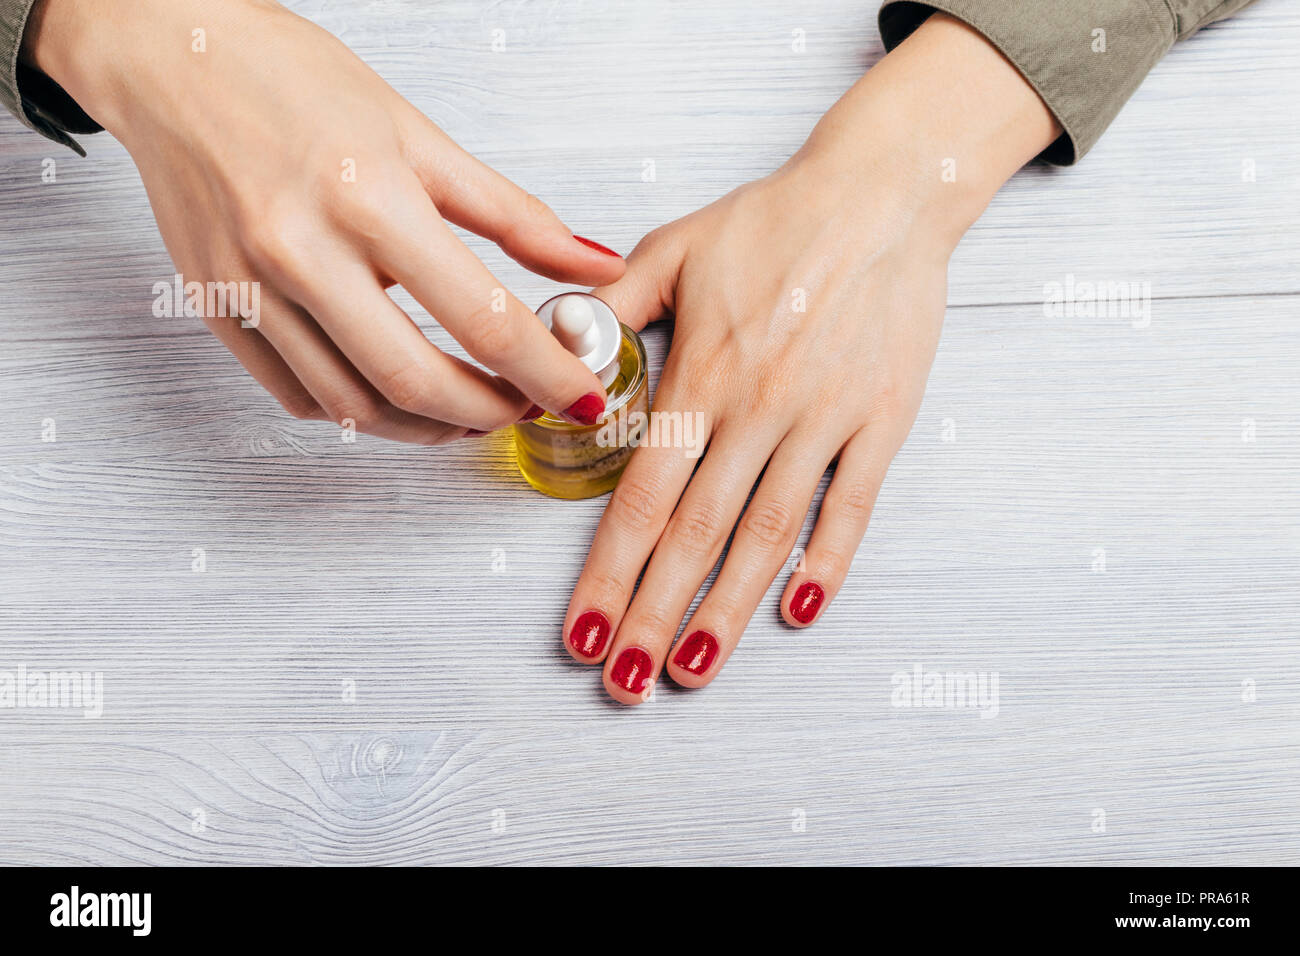 Have faced young teen girl finger herself agree